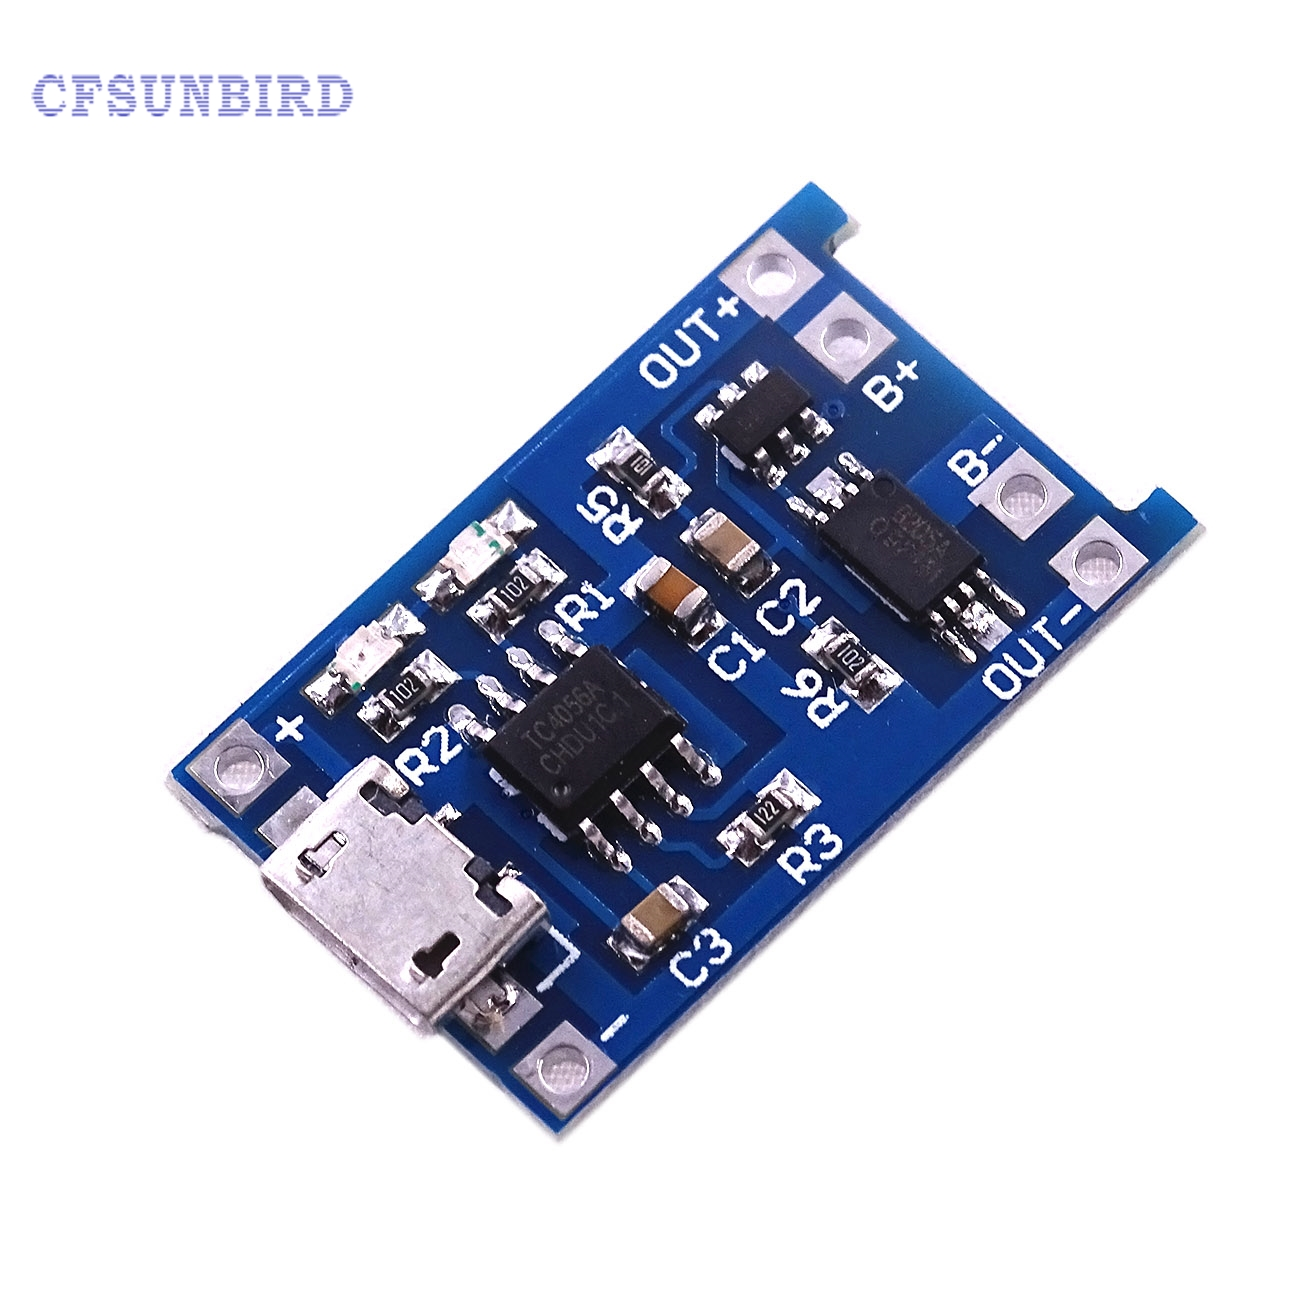 10pcs  Micro USB 5V 1A 18650 TP4056 Lithium Battery Charger Module Charging Board With Protection Dual Functions 4pcs micro usb 5v 1a 18650 tp4056 lithium battery charger module lipo charging board with dual functions automatic protection